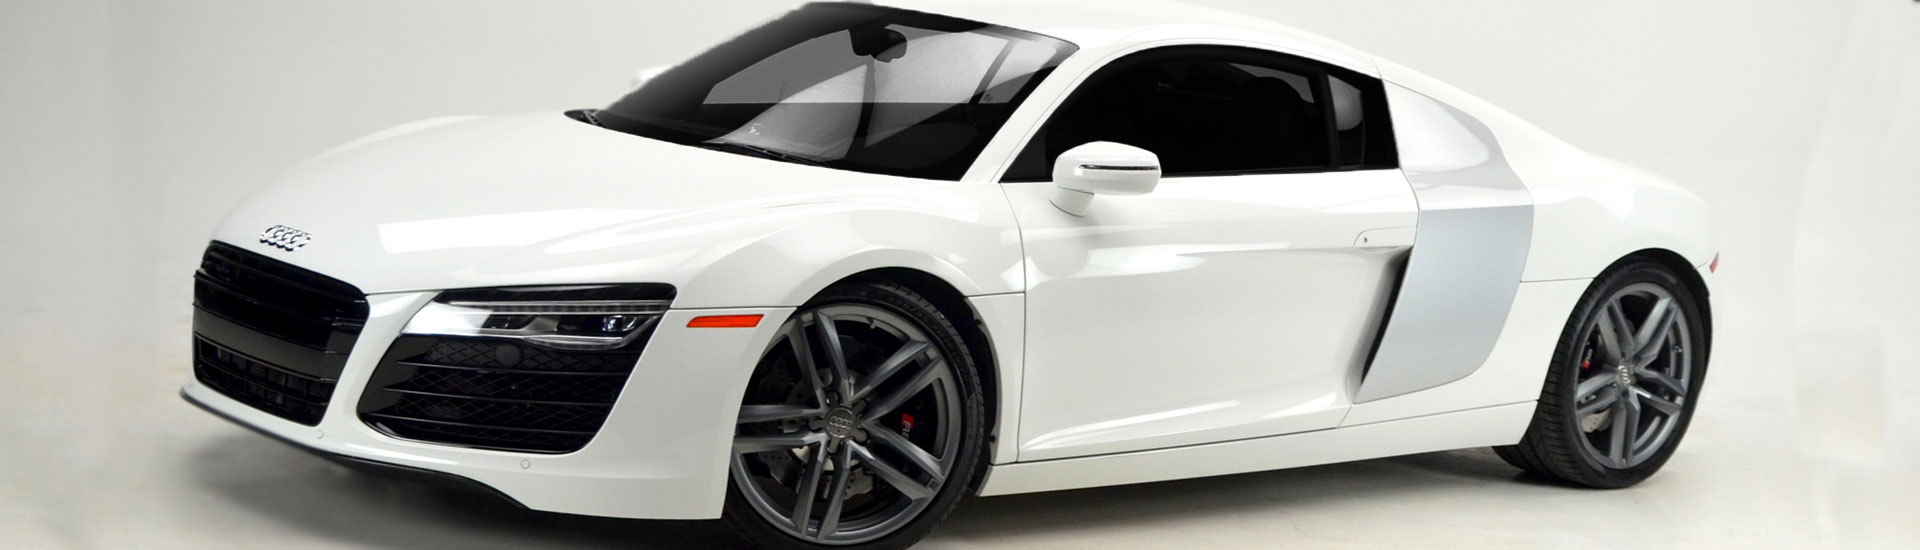 2012 Audi R8 Window Tint